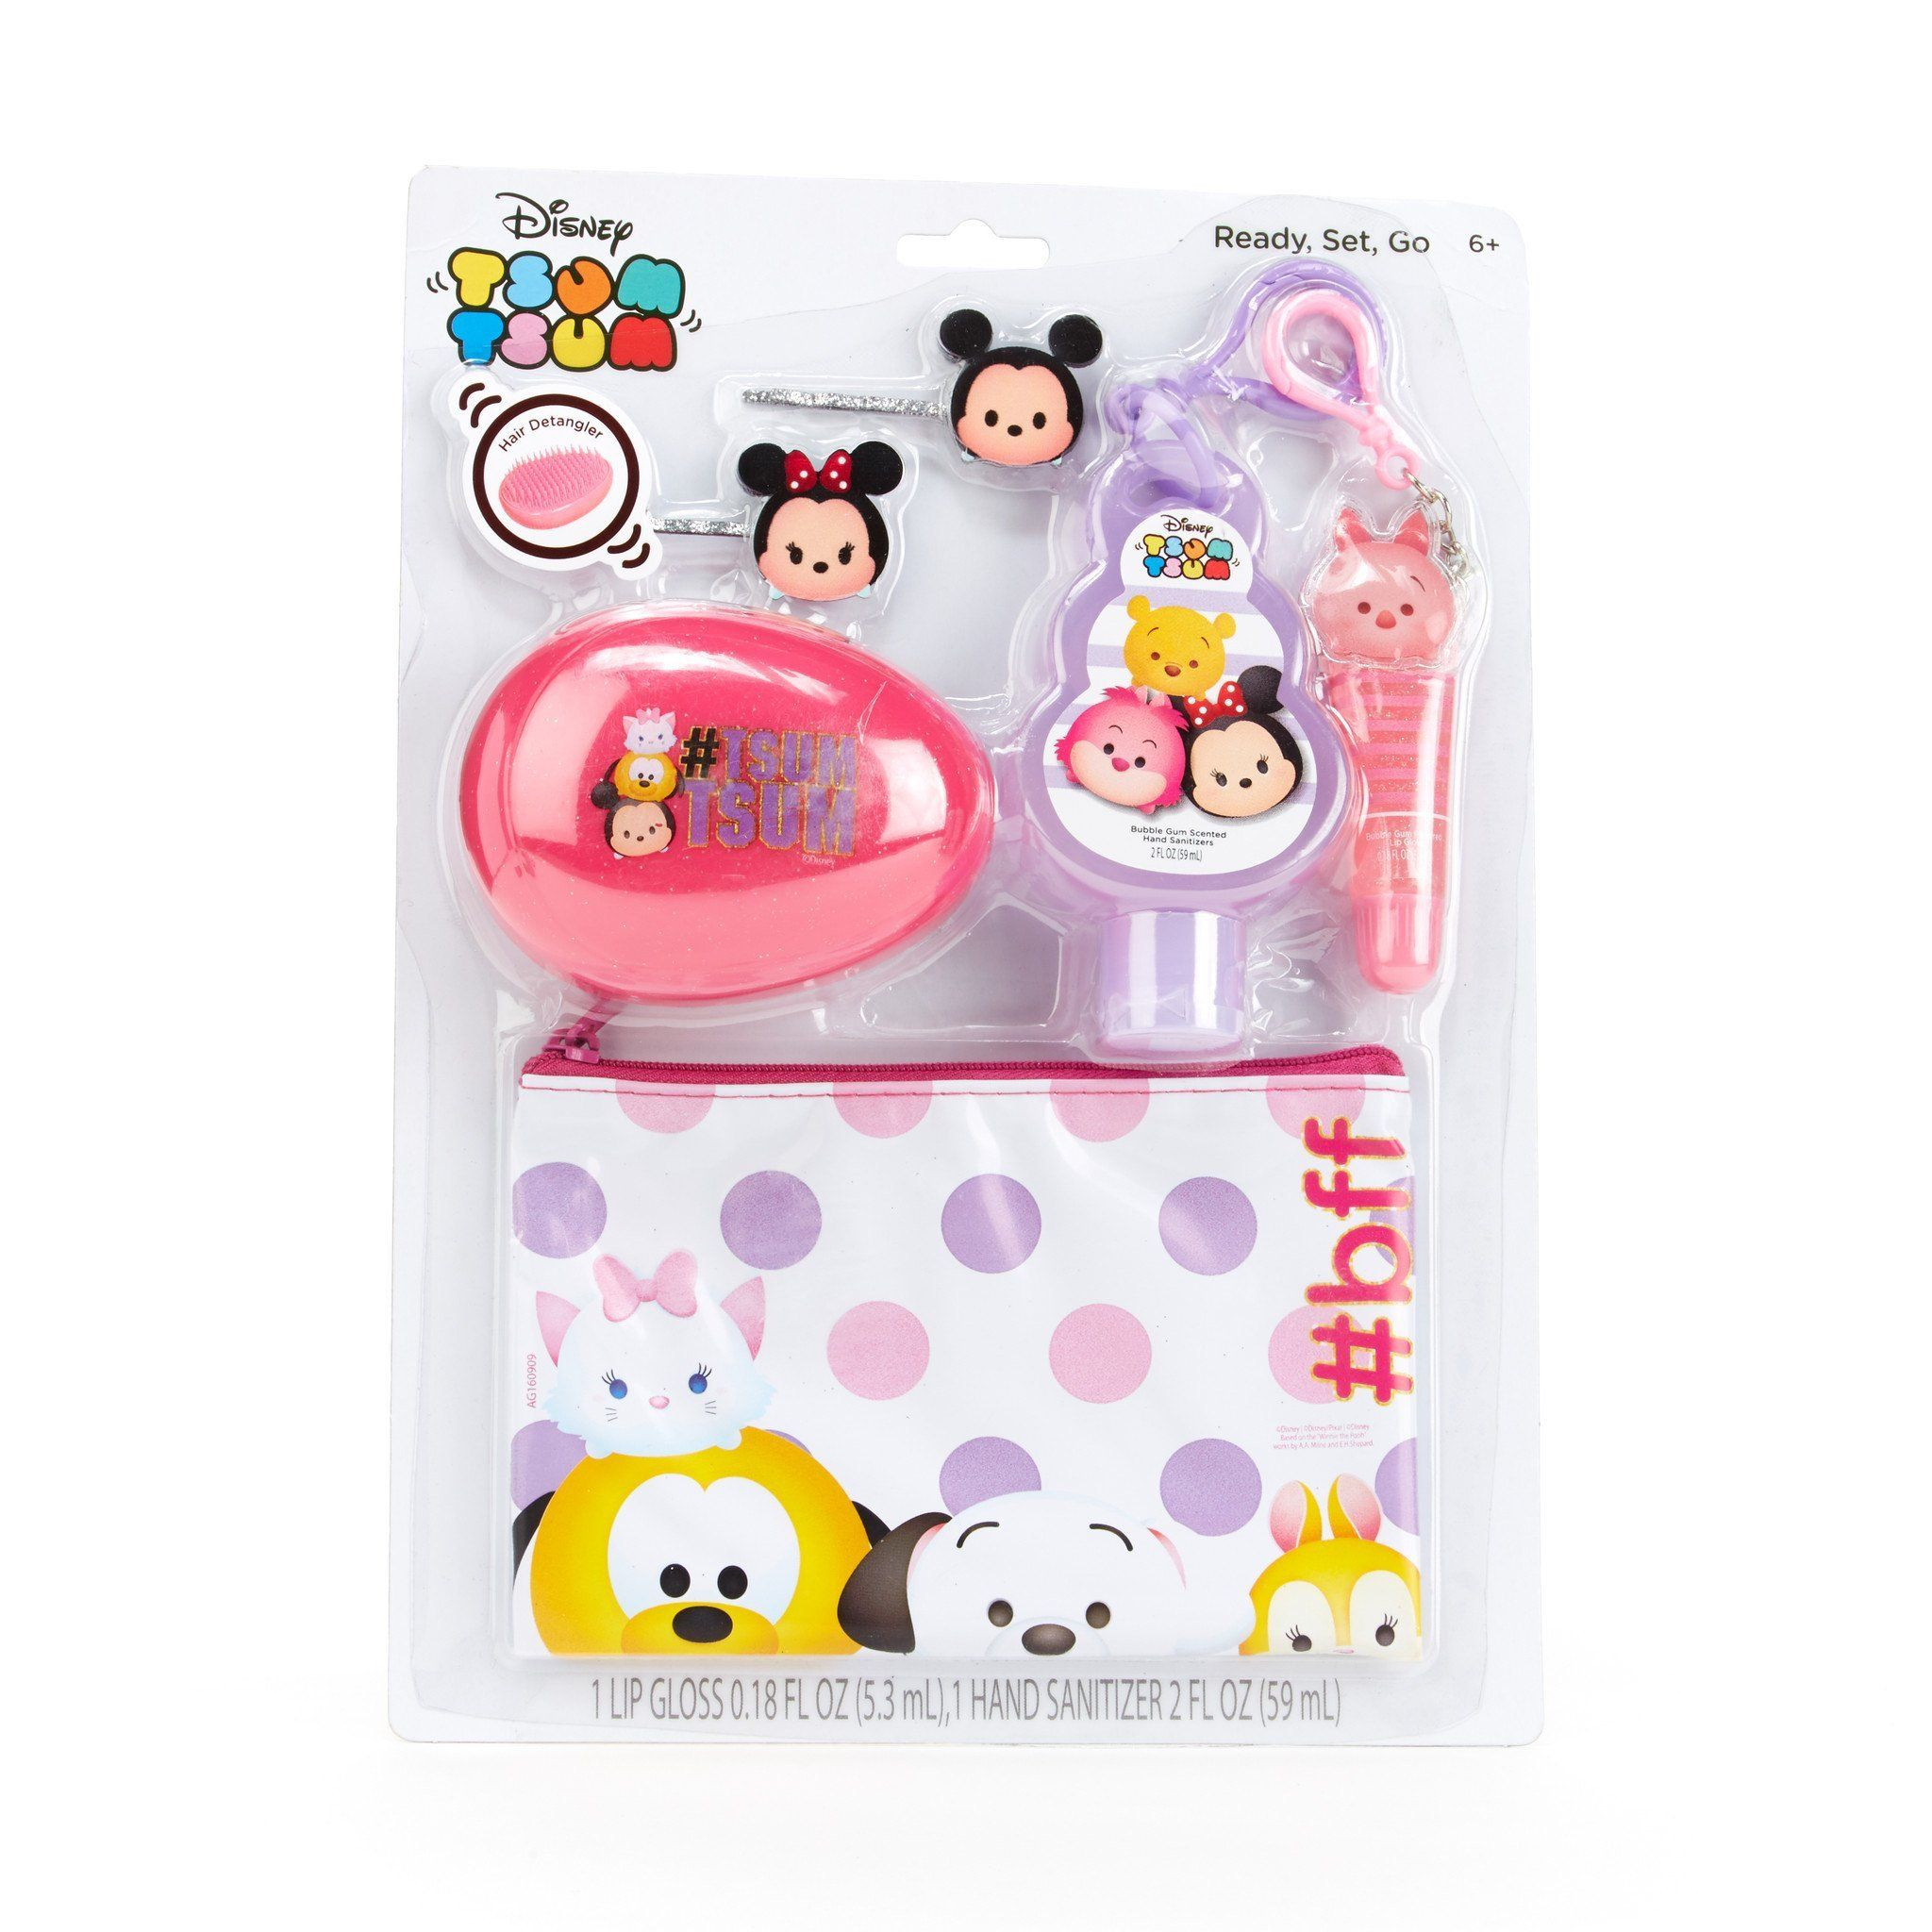 Tsum Tsum Glamorous Cosmetic Set Cosmetic Sets Beauty Kit